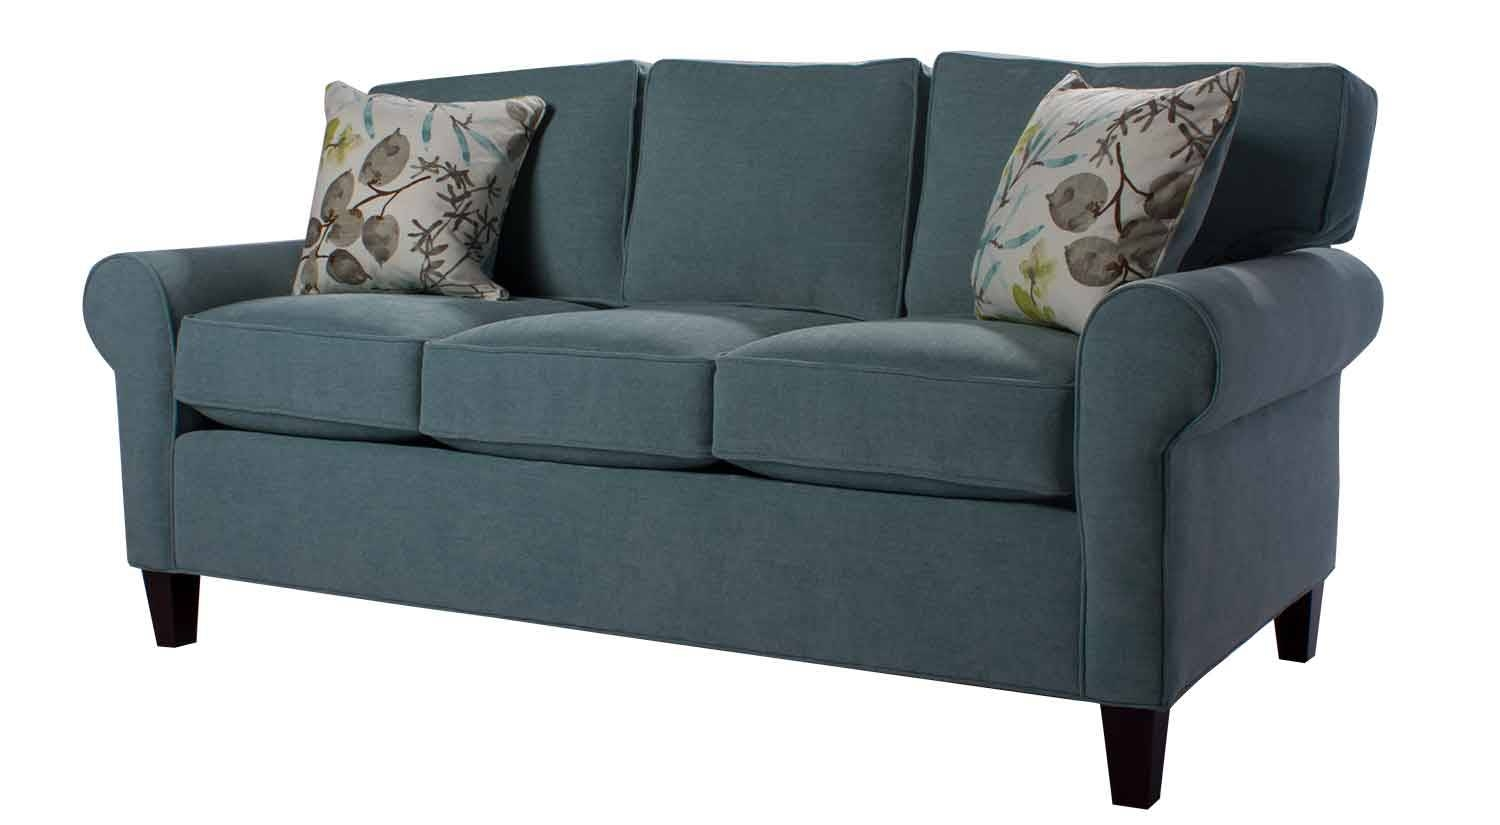 Circle Furniture - Copley Sofa | Sofas | Boston Furniture | Circle inside Norwalk Sofa and Chairs (Image 10 of 30)